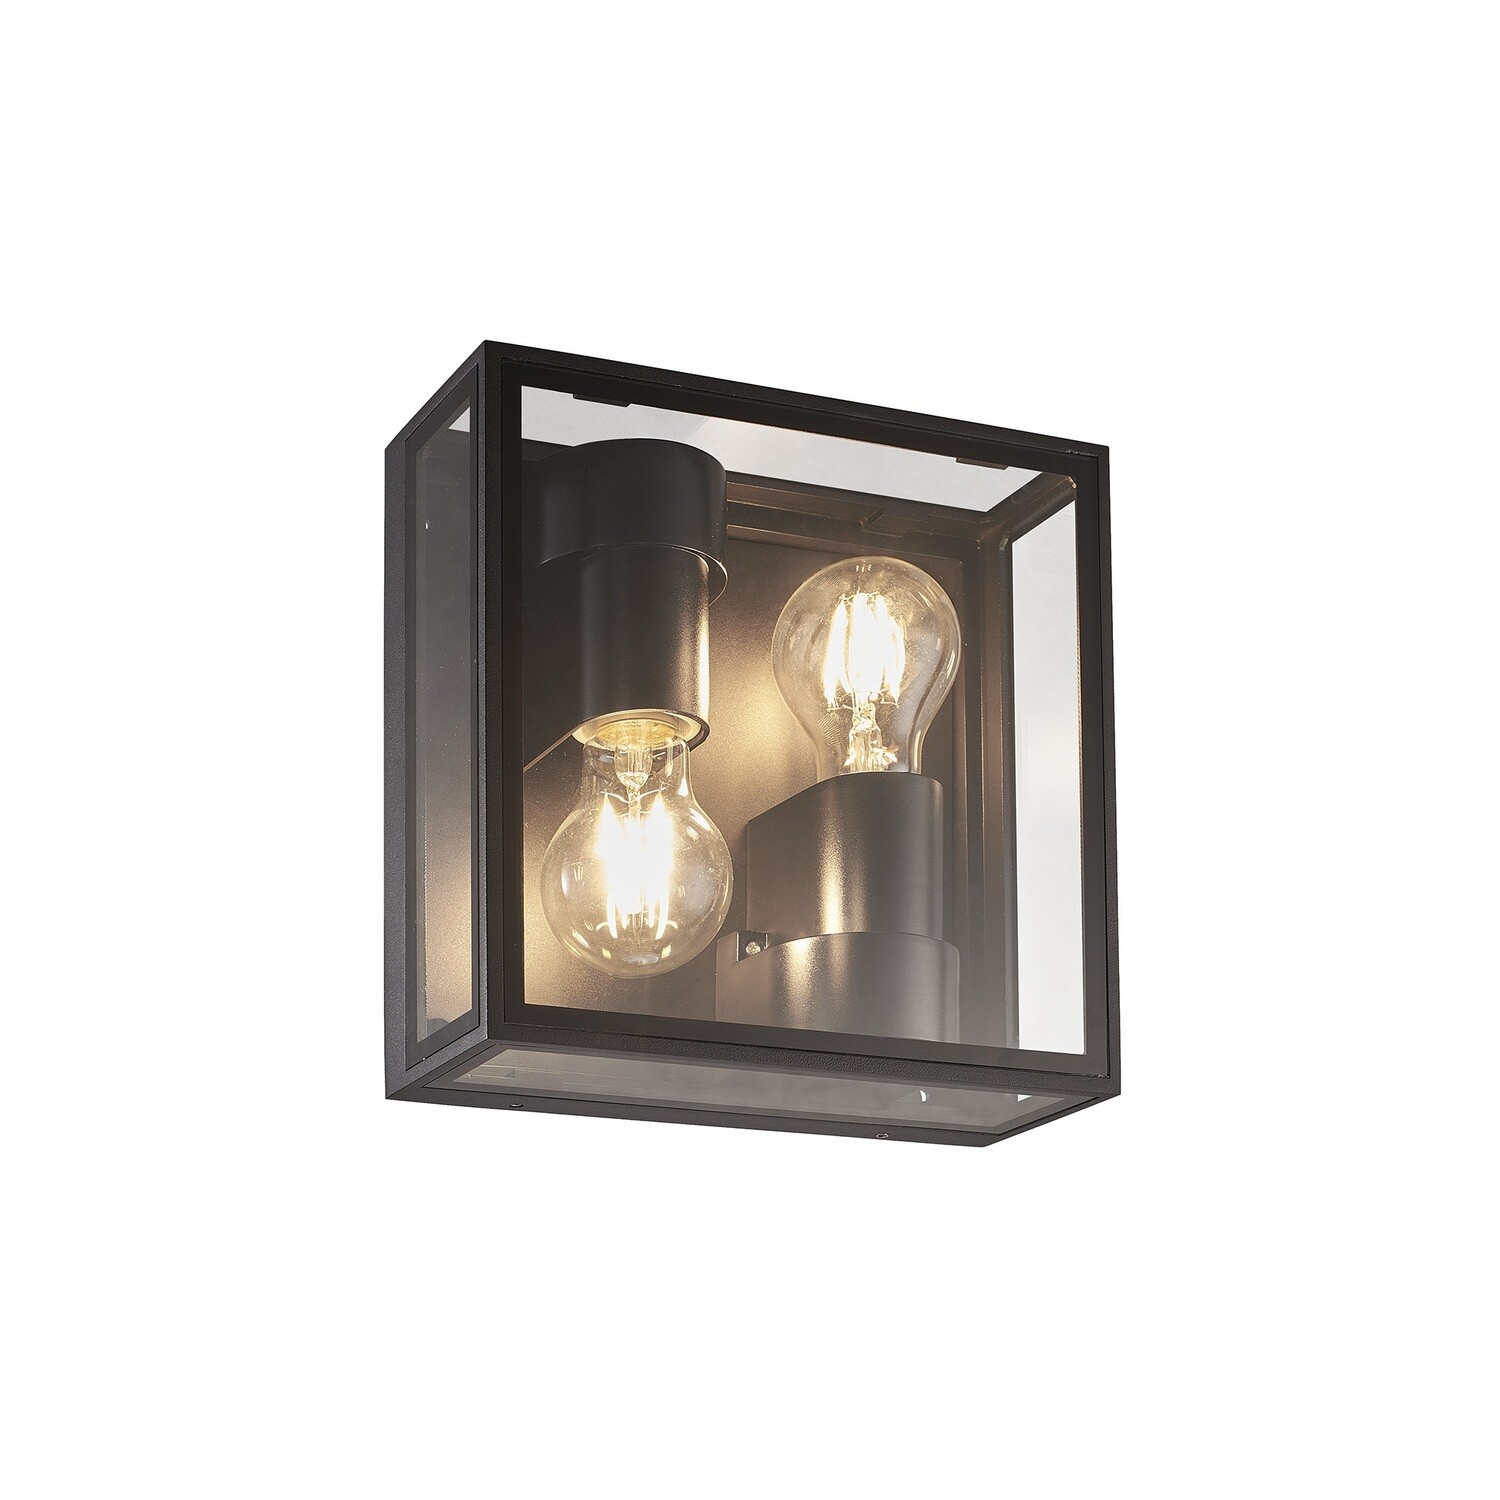 Verbier Up/Down Ceiling/Wall Lamp, 2 x E27, IP65, Dark Grey